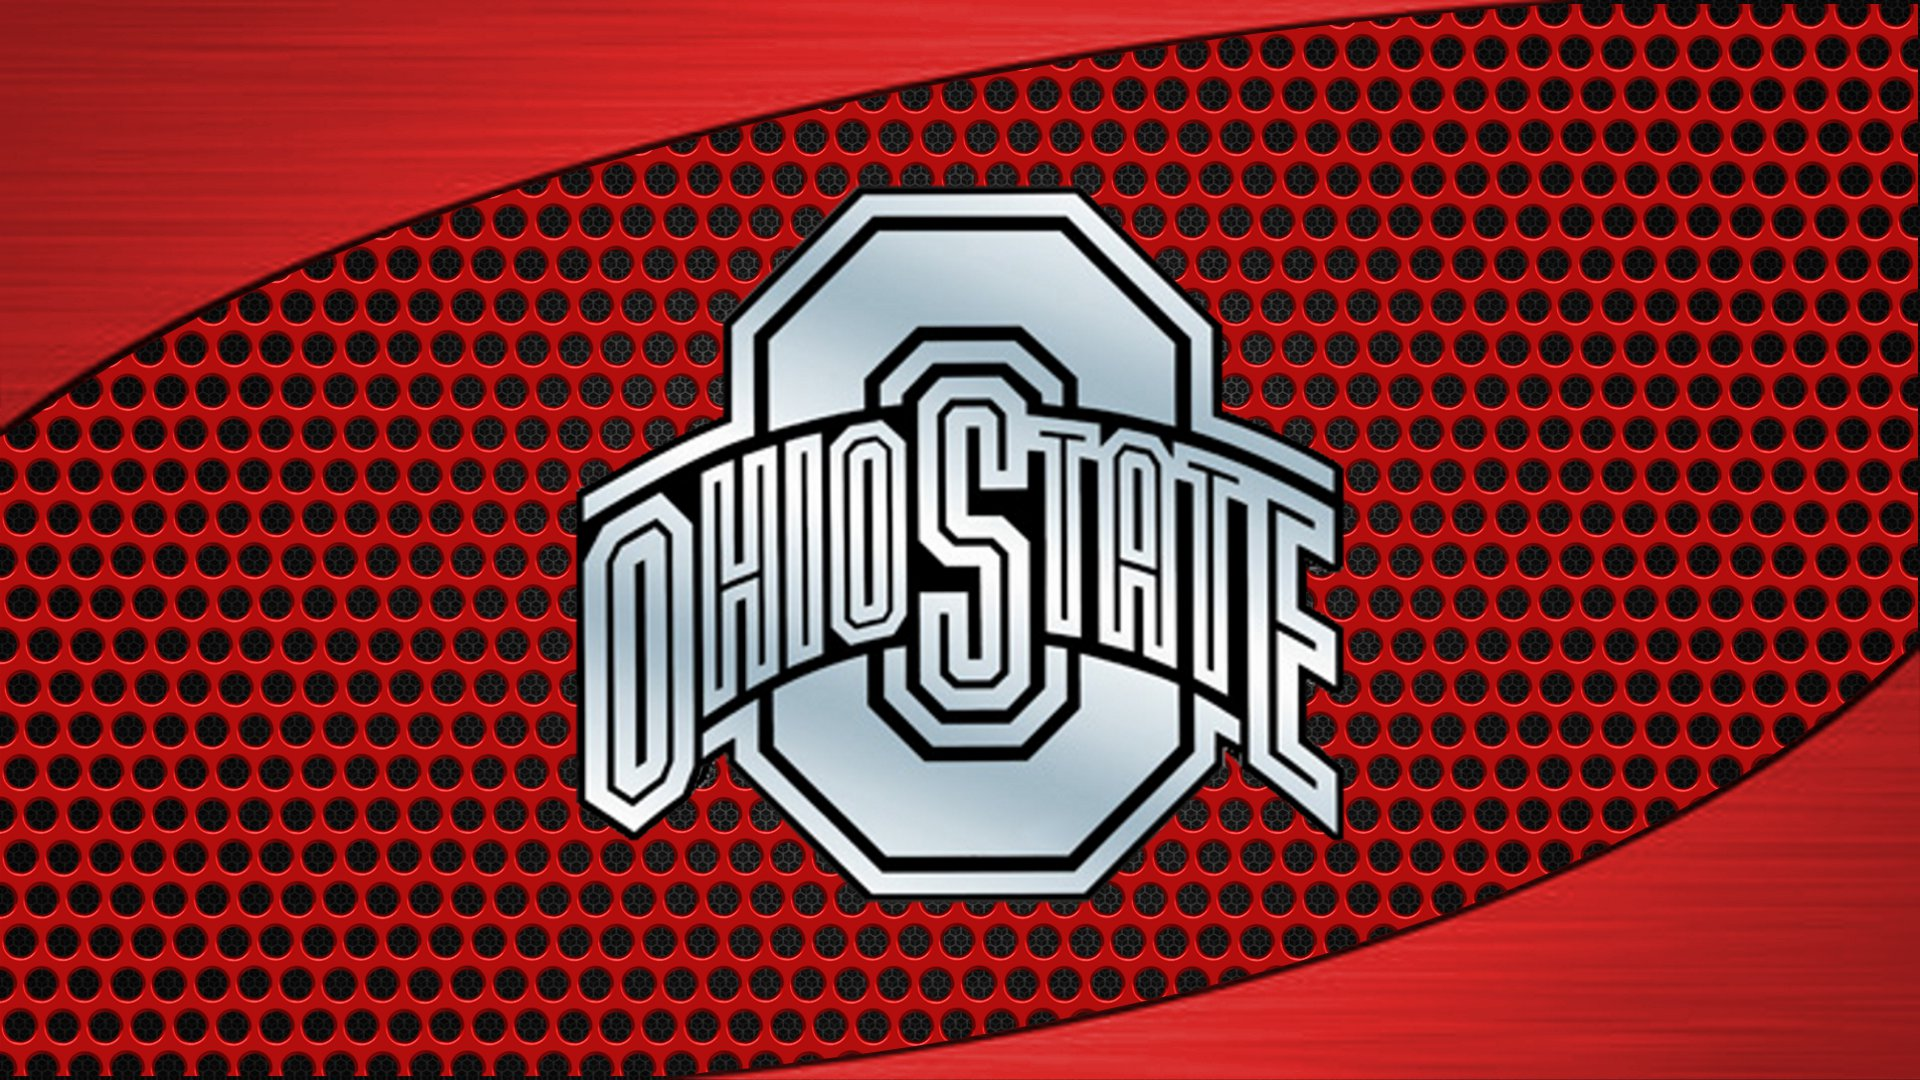 Ohio State Buckeyes Football Wallpaper 1920x1080